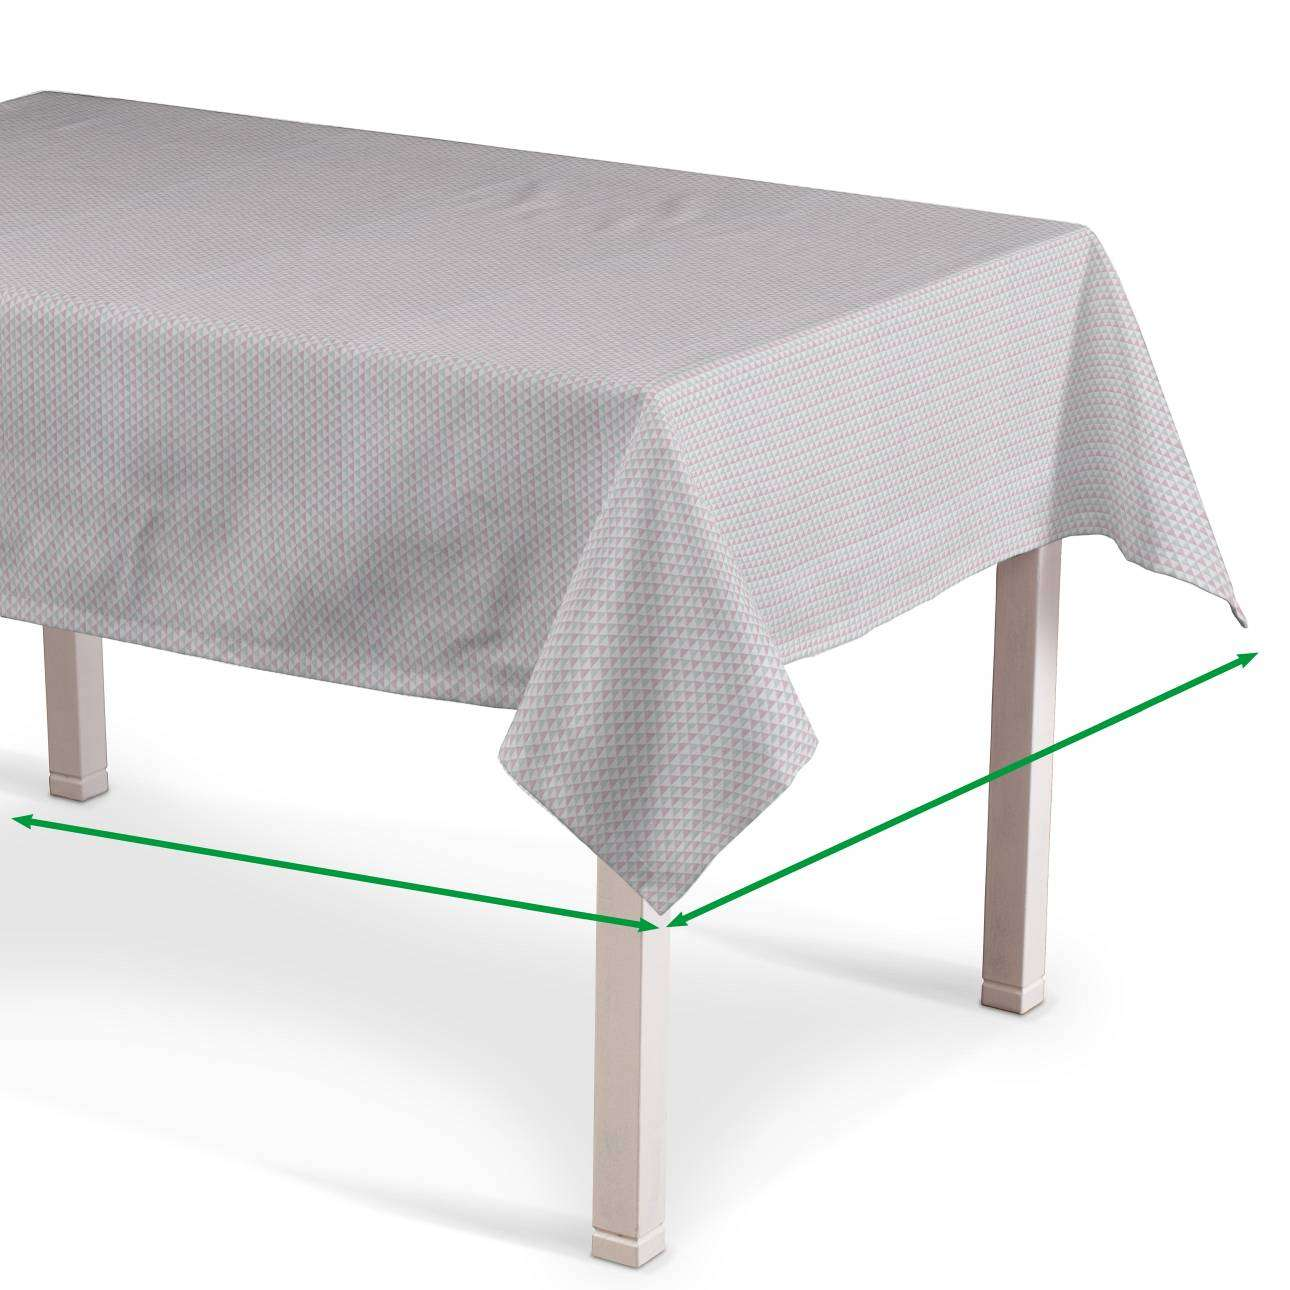 Rectangular tablecloth in collection Rustica, fabric: 140-28